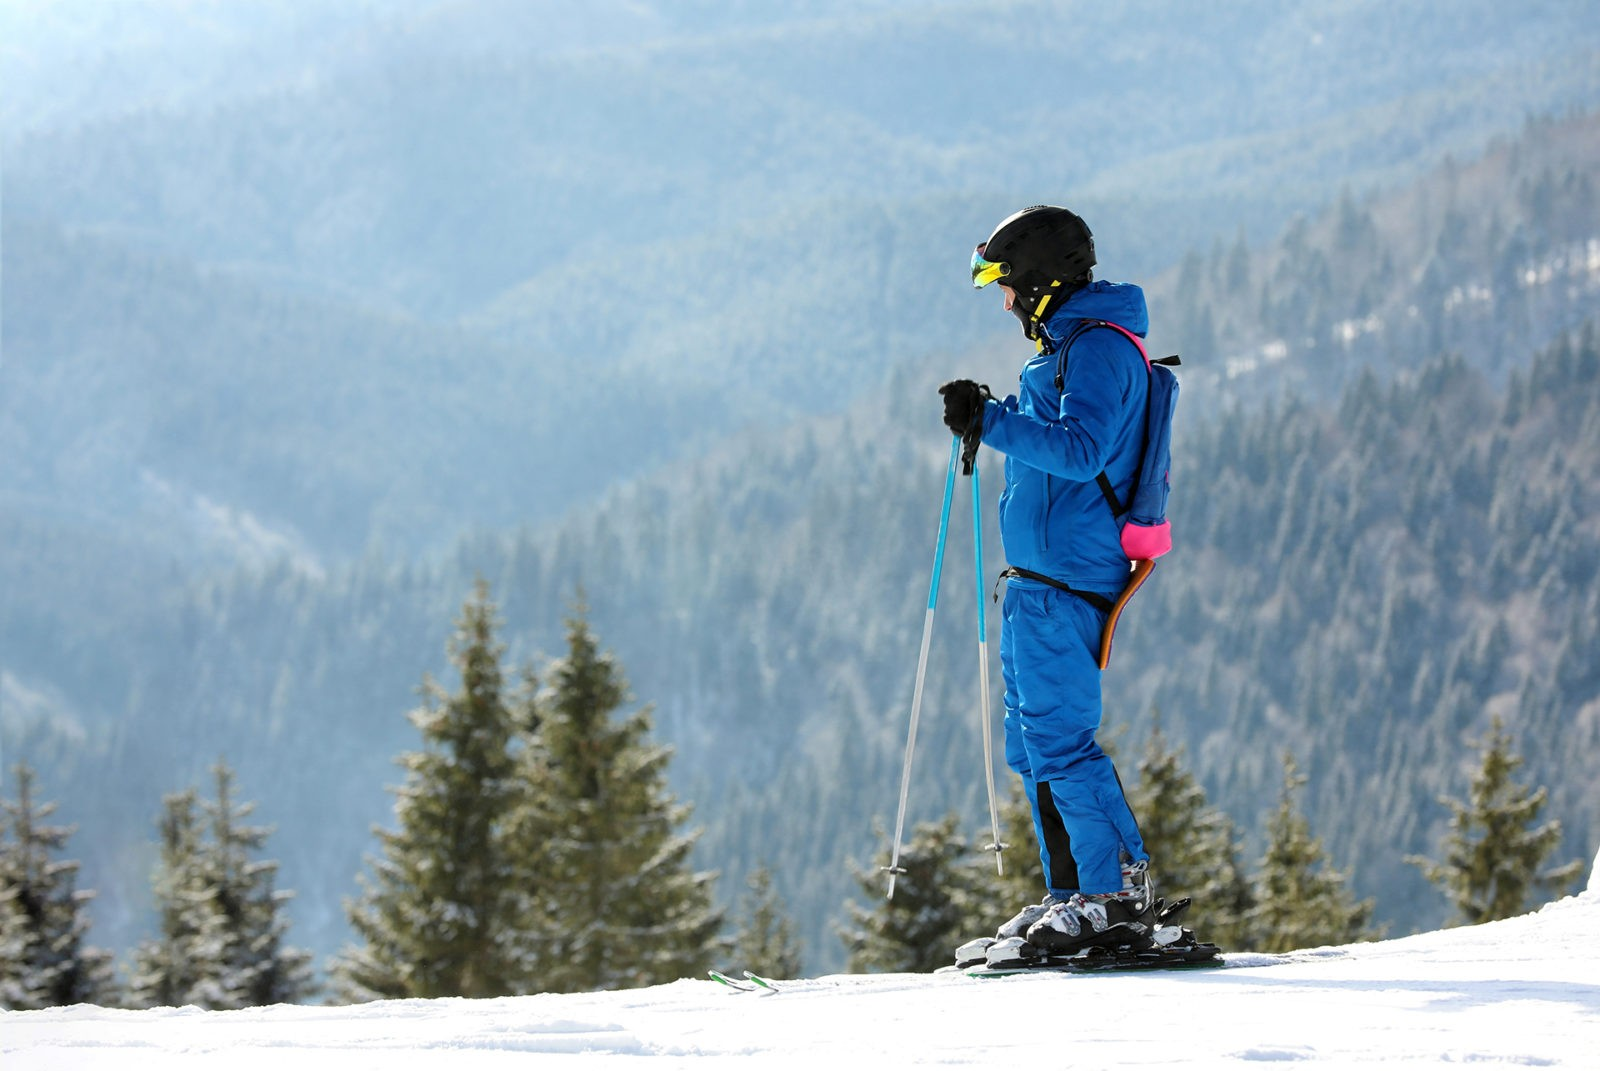 Man skiing on snowy hill in mountains, space for text. Winter vacation